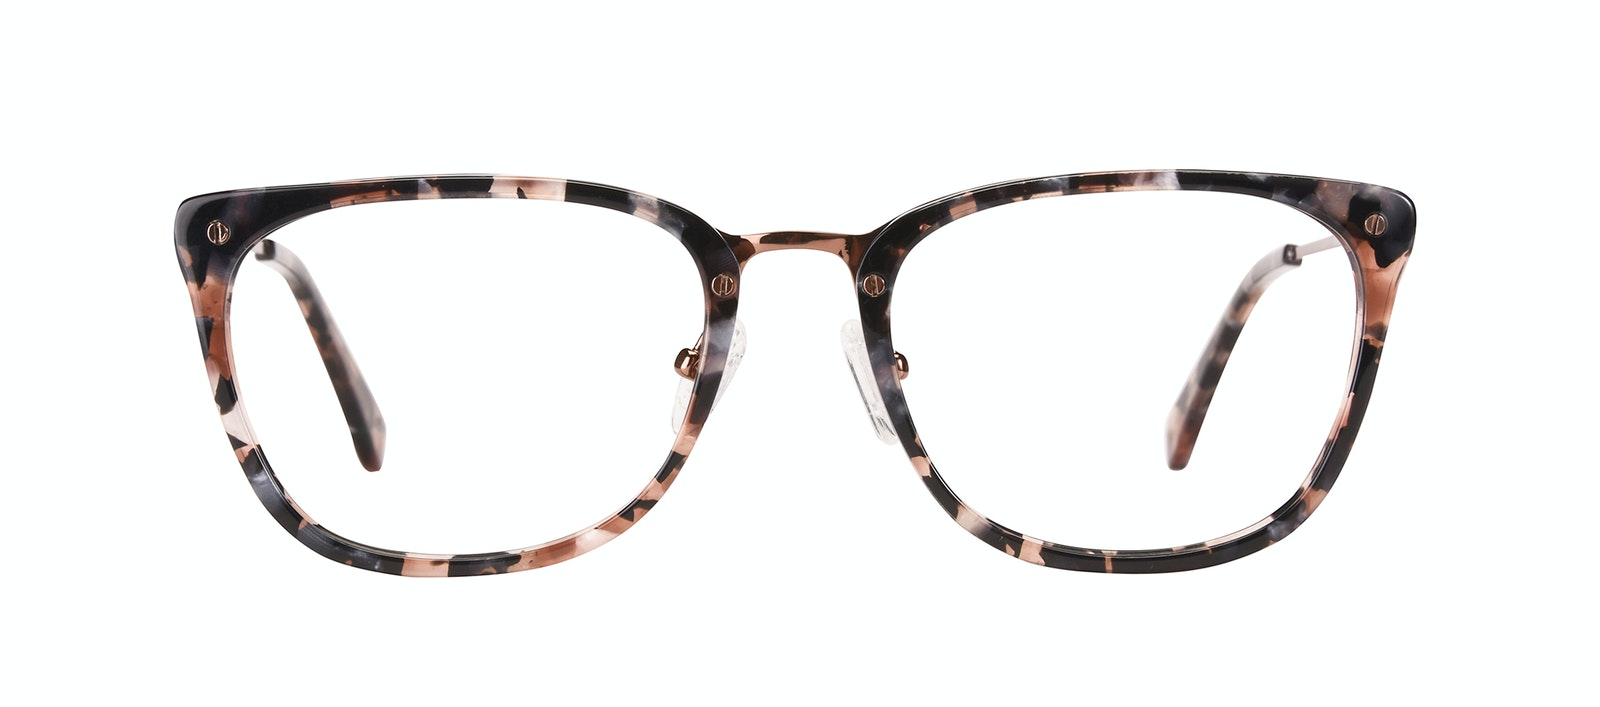 Affordable Fashion Glasses Rectangle Eyeglasses Women Wonder Pink Flake Front